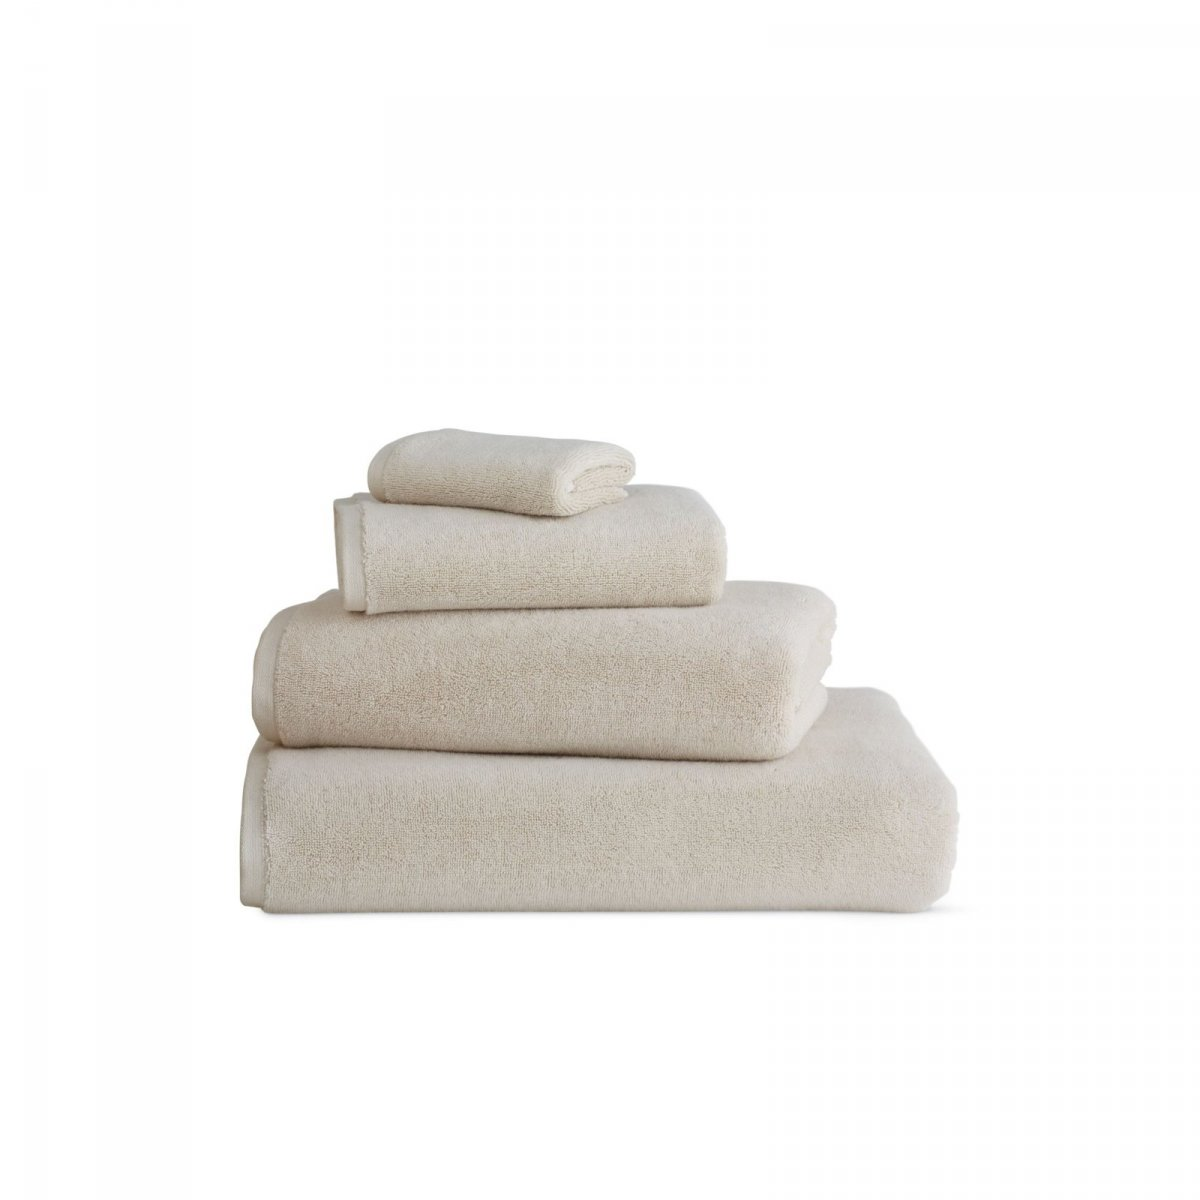 DWR Aerocotton Towels, beige.